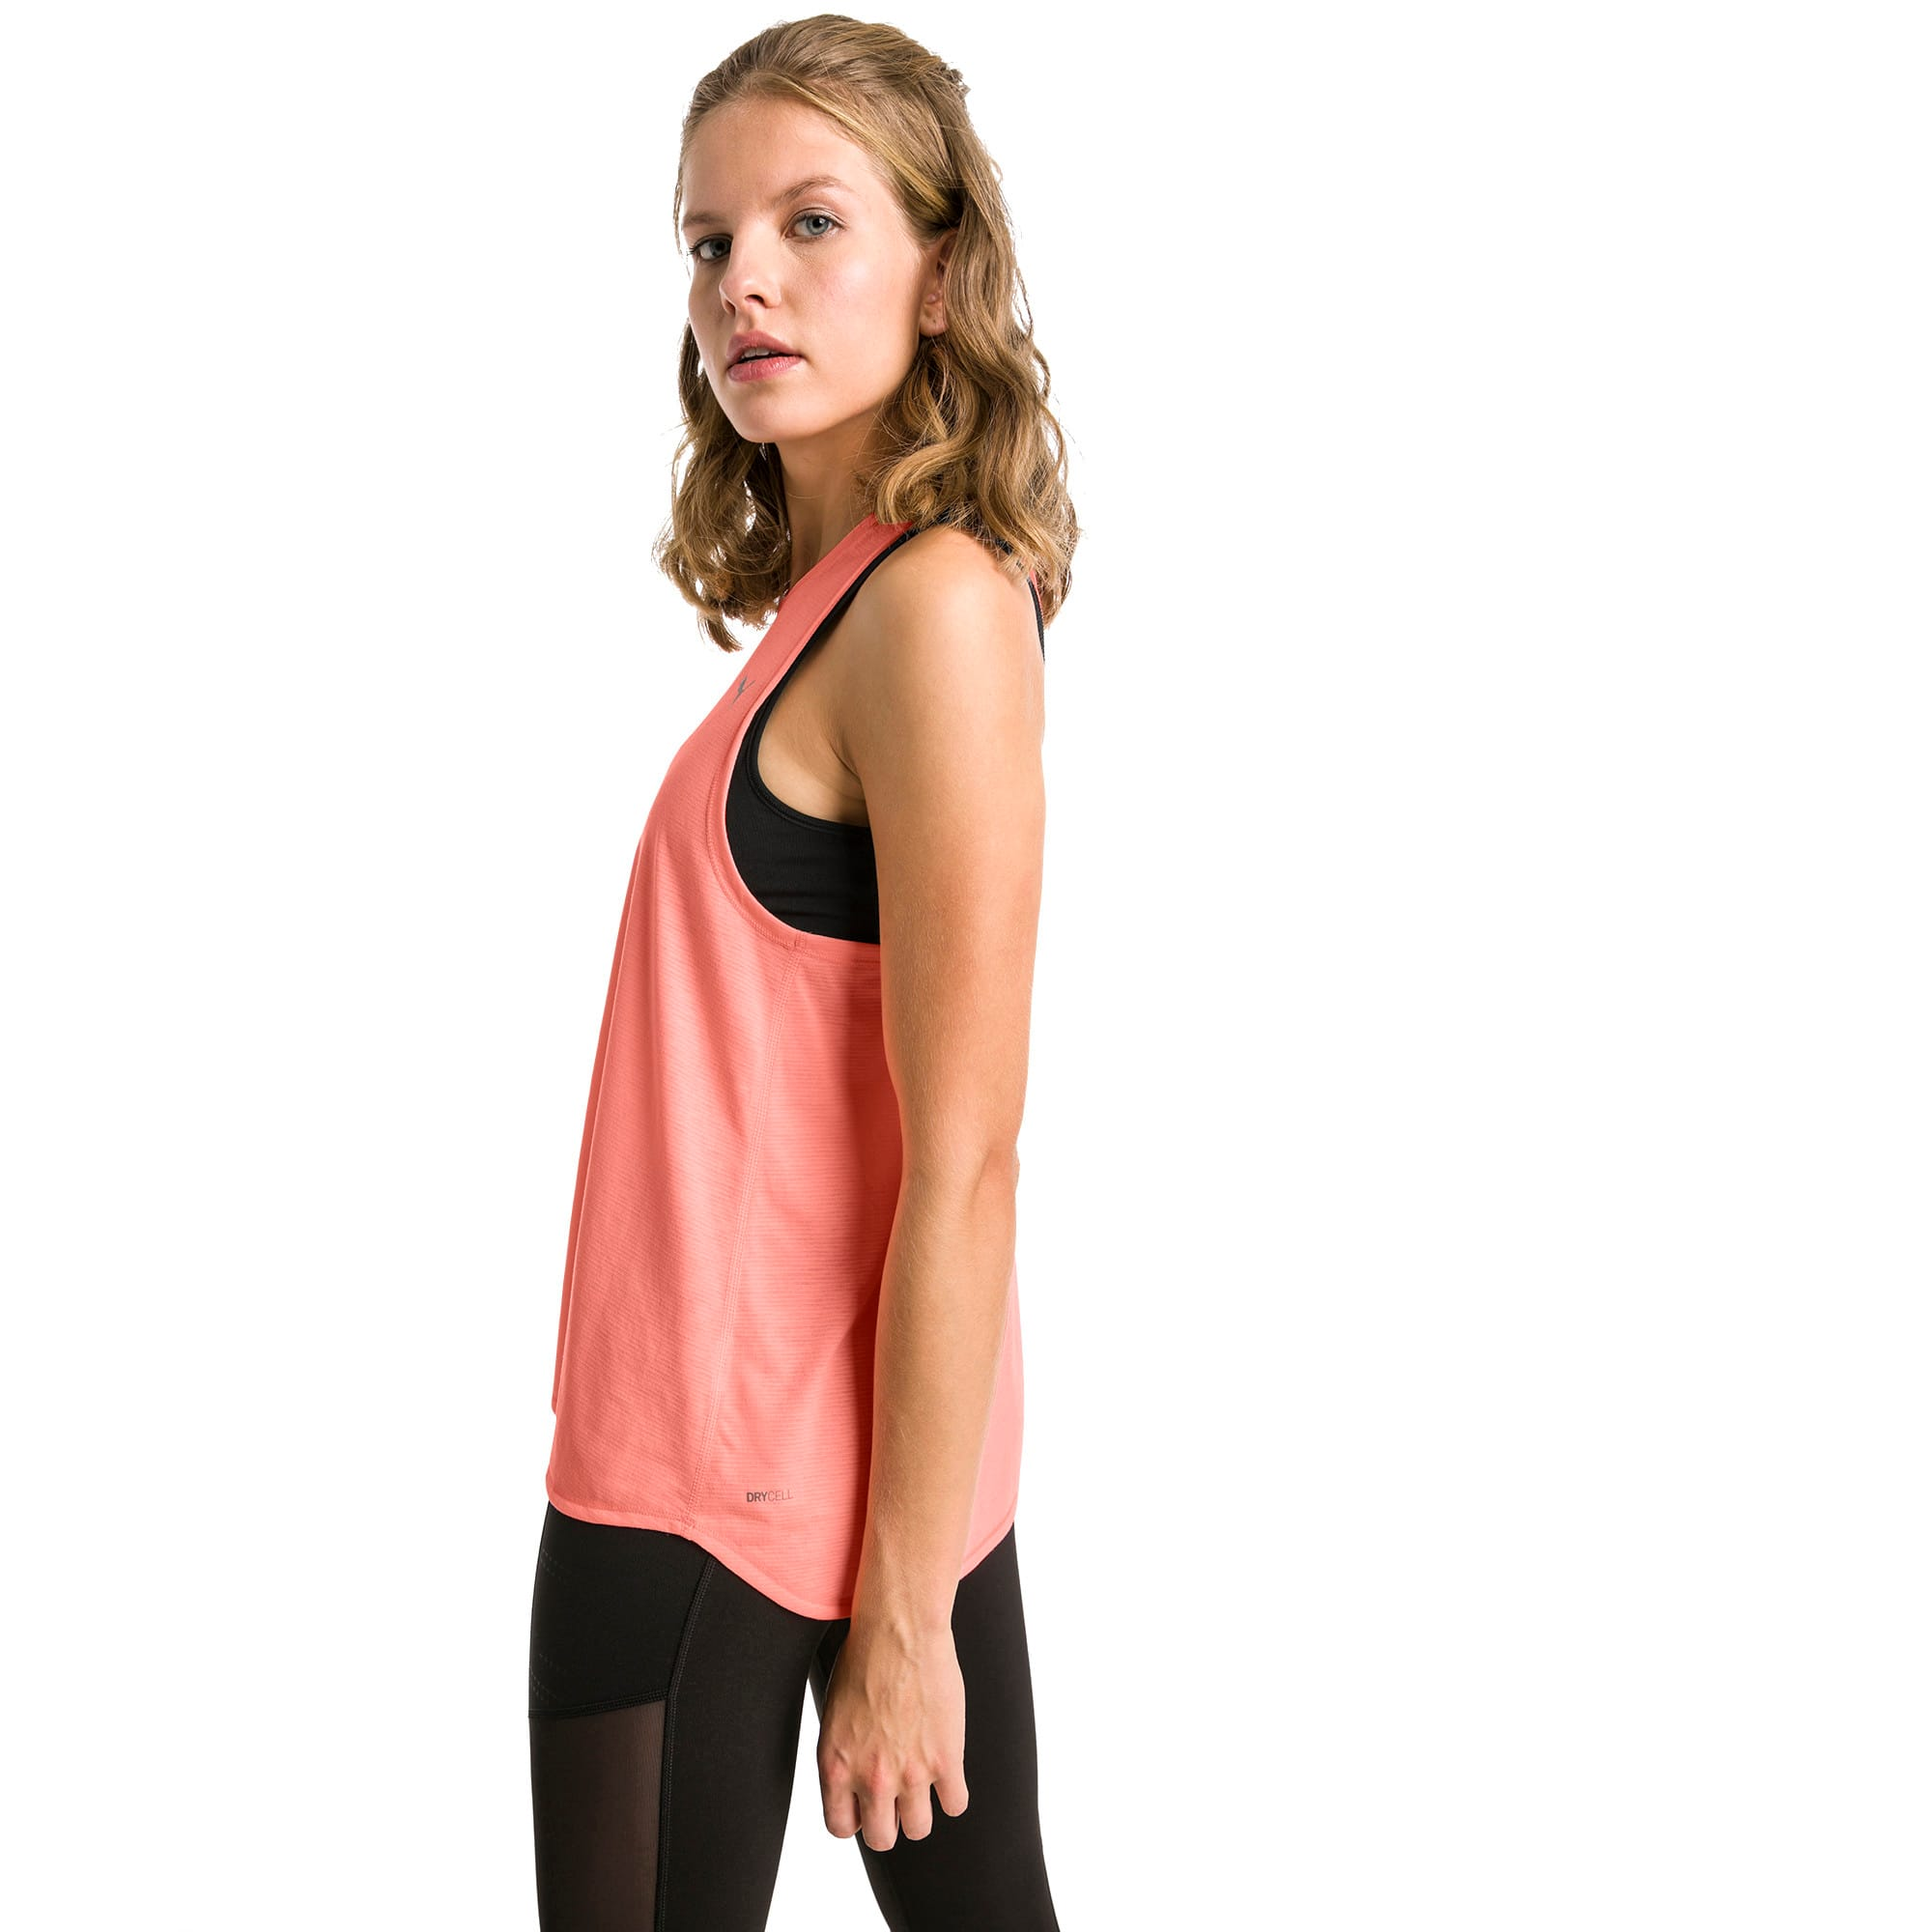 Thumbnail 1 of Running Women's IGNITE Mono Tank Top, Bright Peach, medium